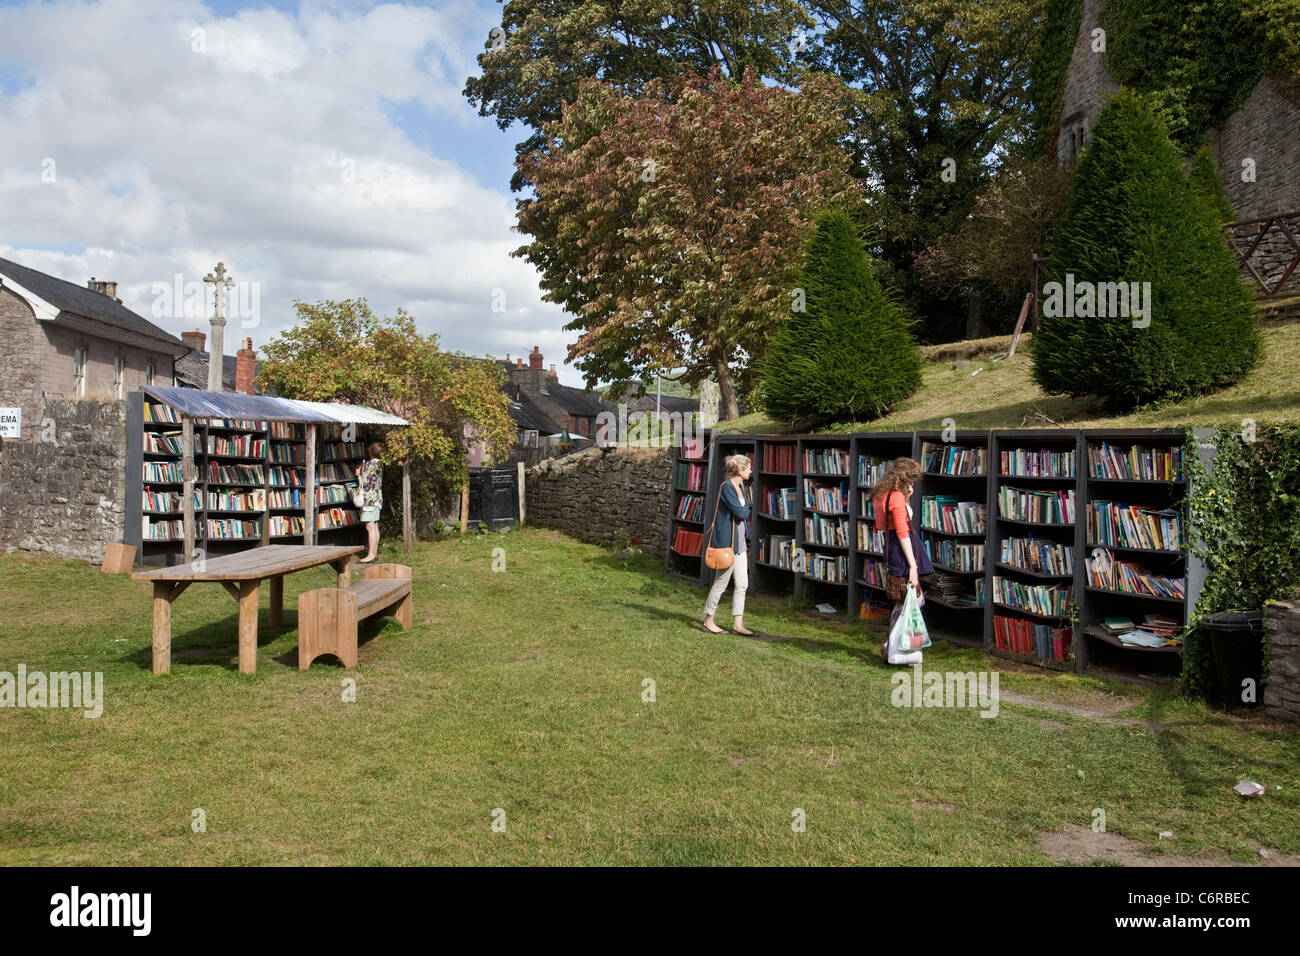 Two people browsing at an honesty bookshop in the grounds of Hay Castle in Hay-On-Wye, UK - Stock Image